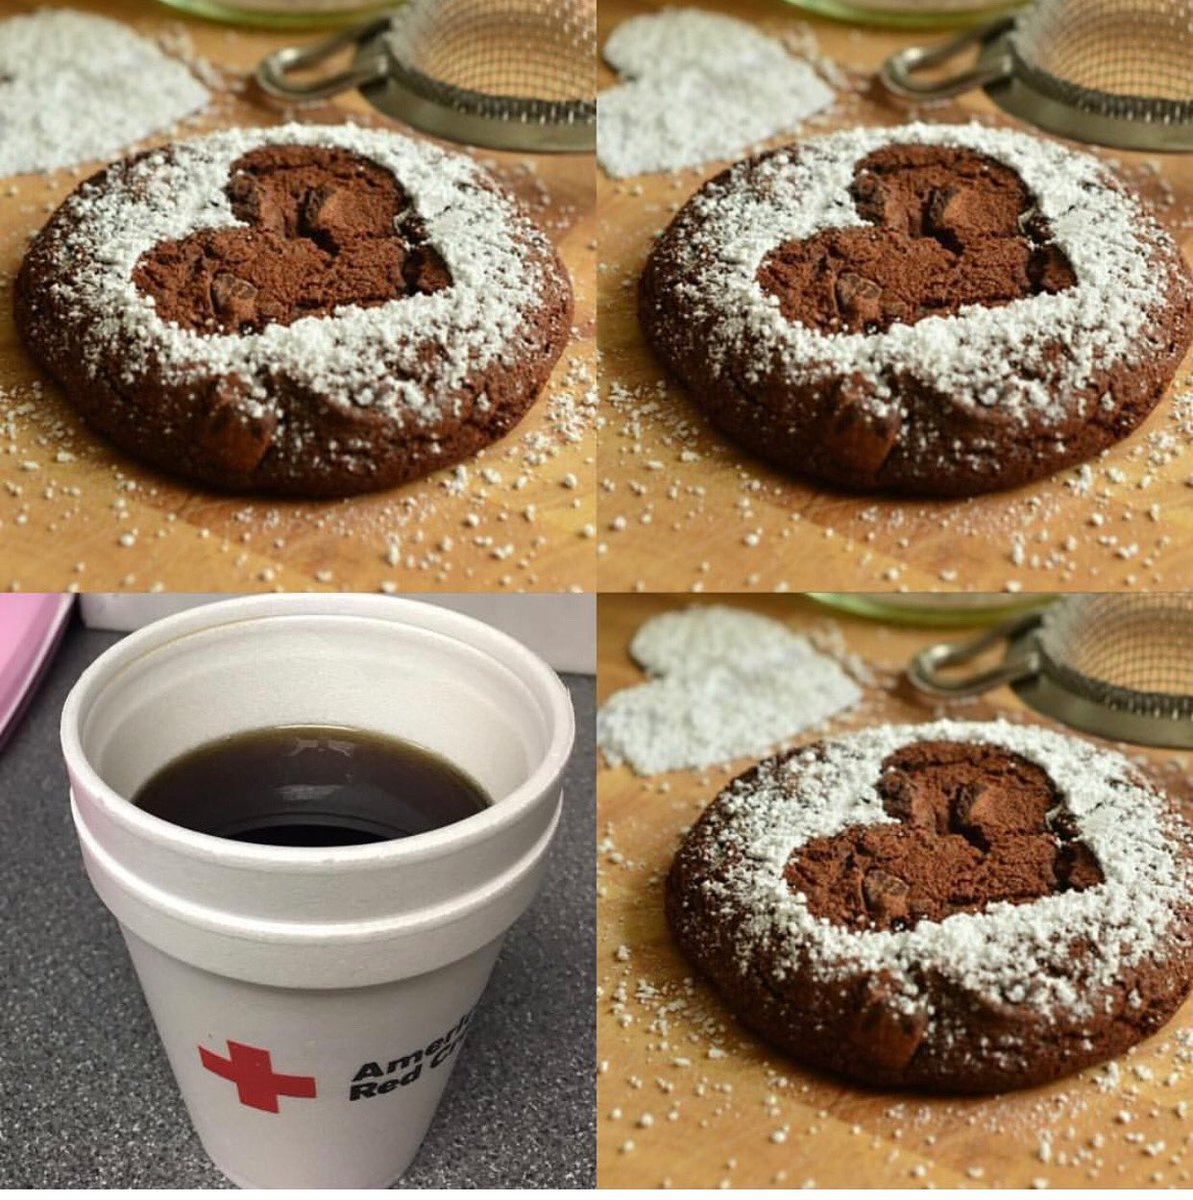 Want to know what is even sweeter than #chocolate? Volunteering with the @RedCross 😎 redcross.org/volunteer/beco… #Chocolateday #WorldChocolateDay